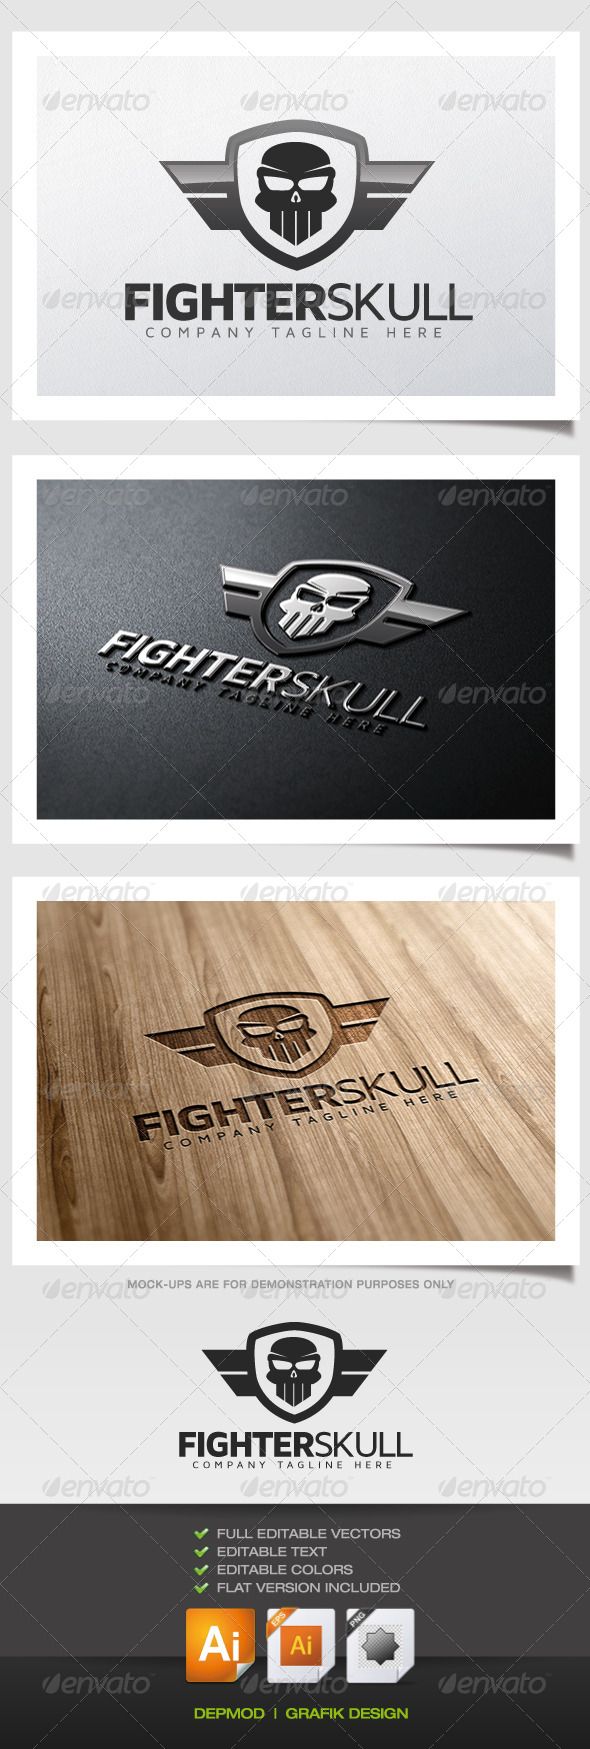 GraphicRiver Fighter Skull Logo 5483450